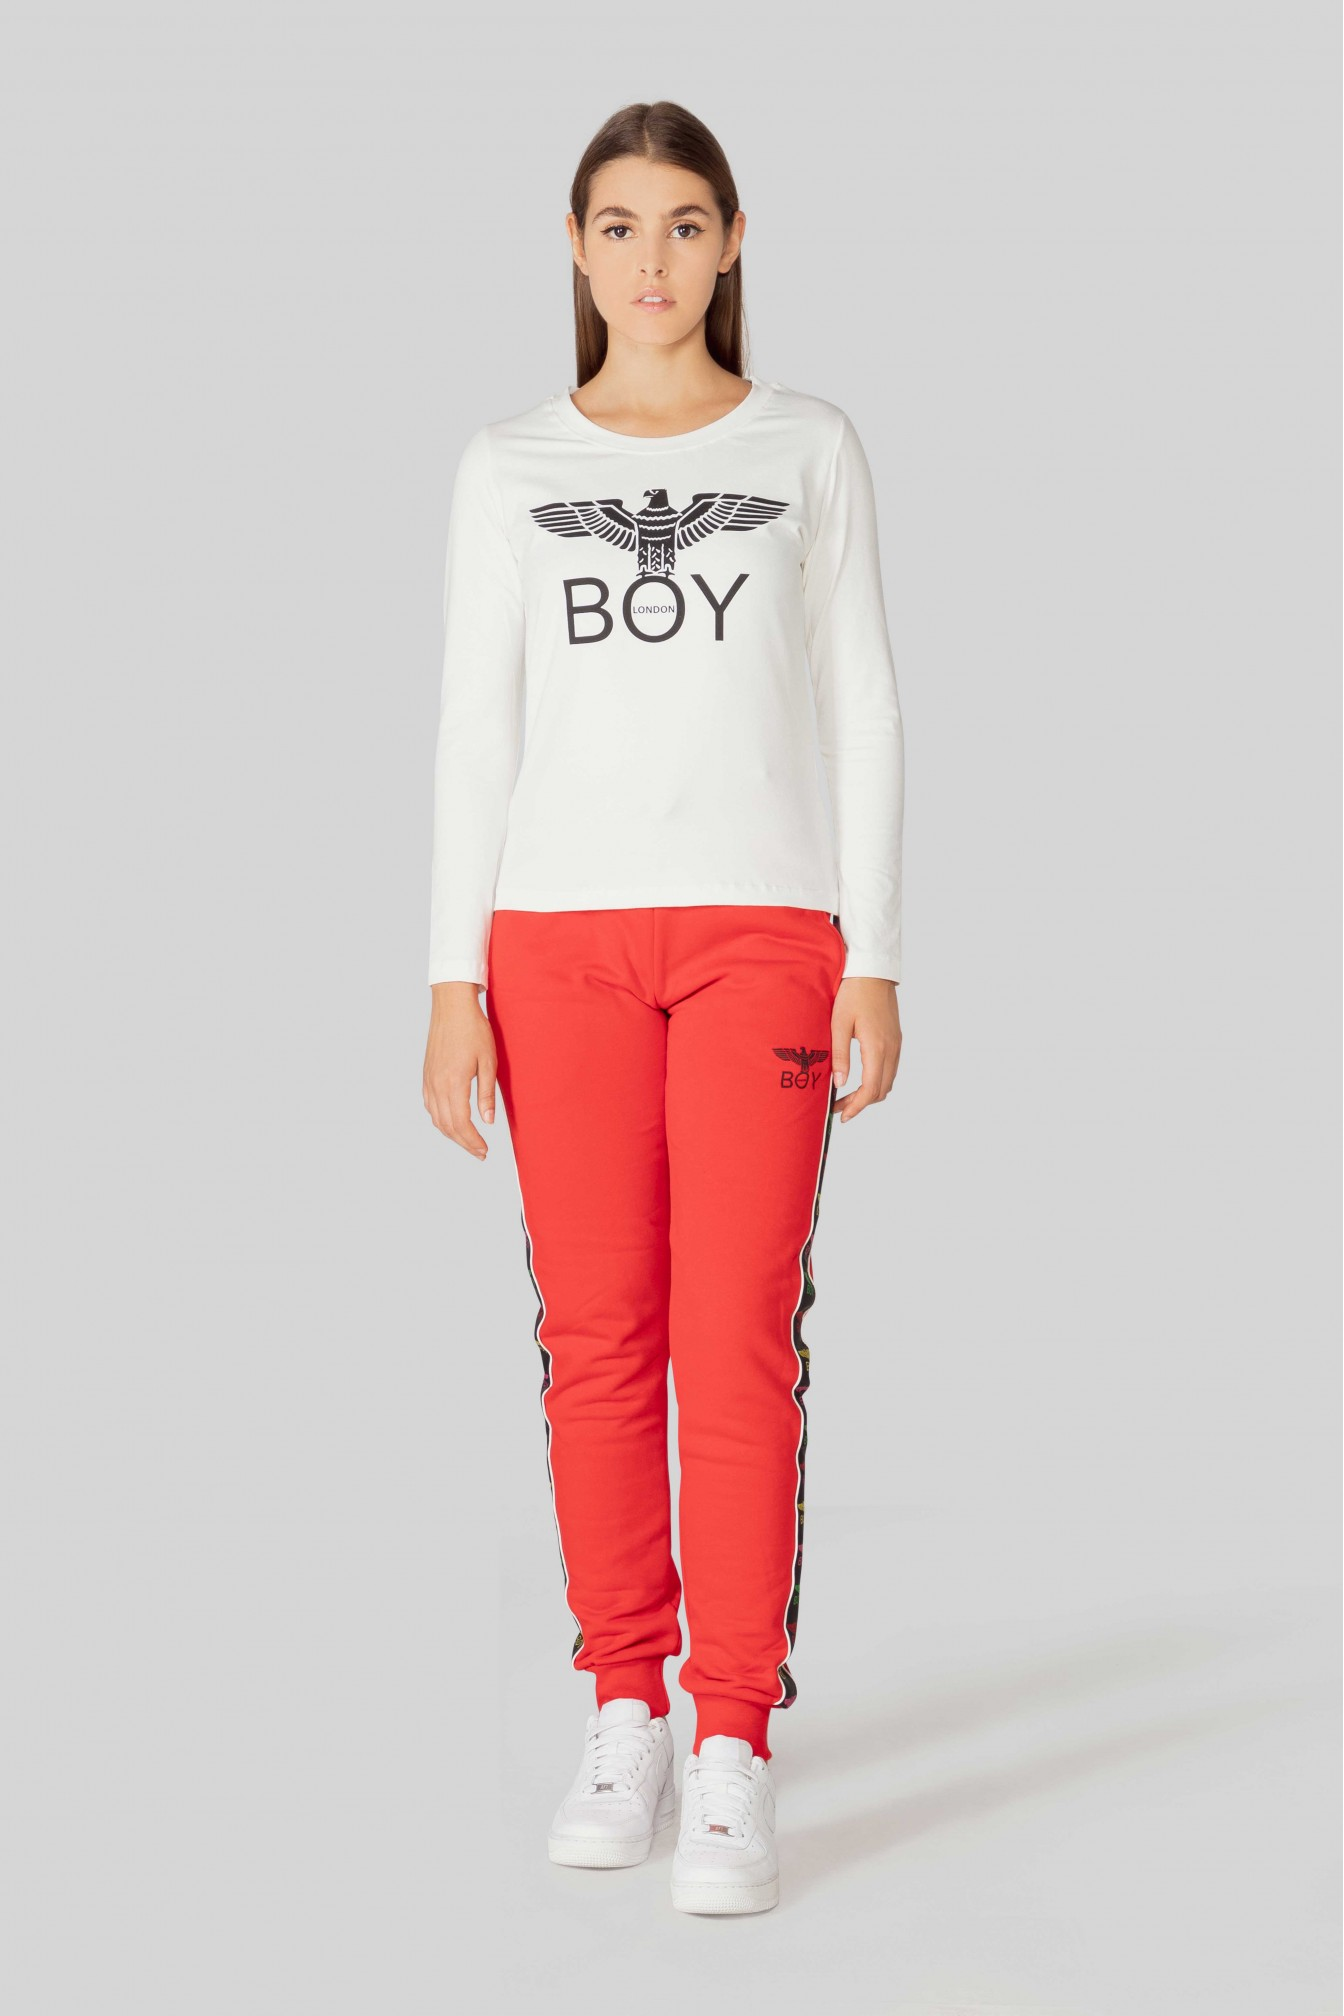 T-SHIRT - BLD2626 - BOY LONDON